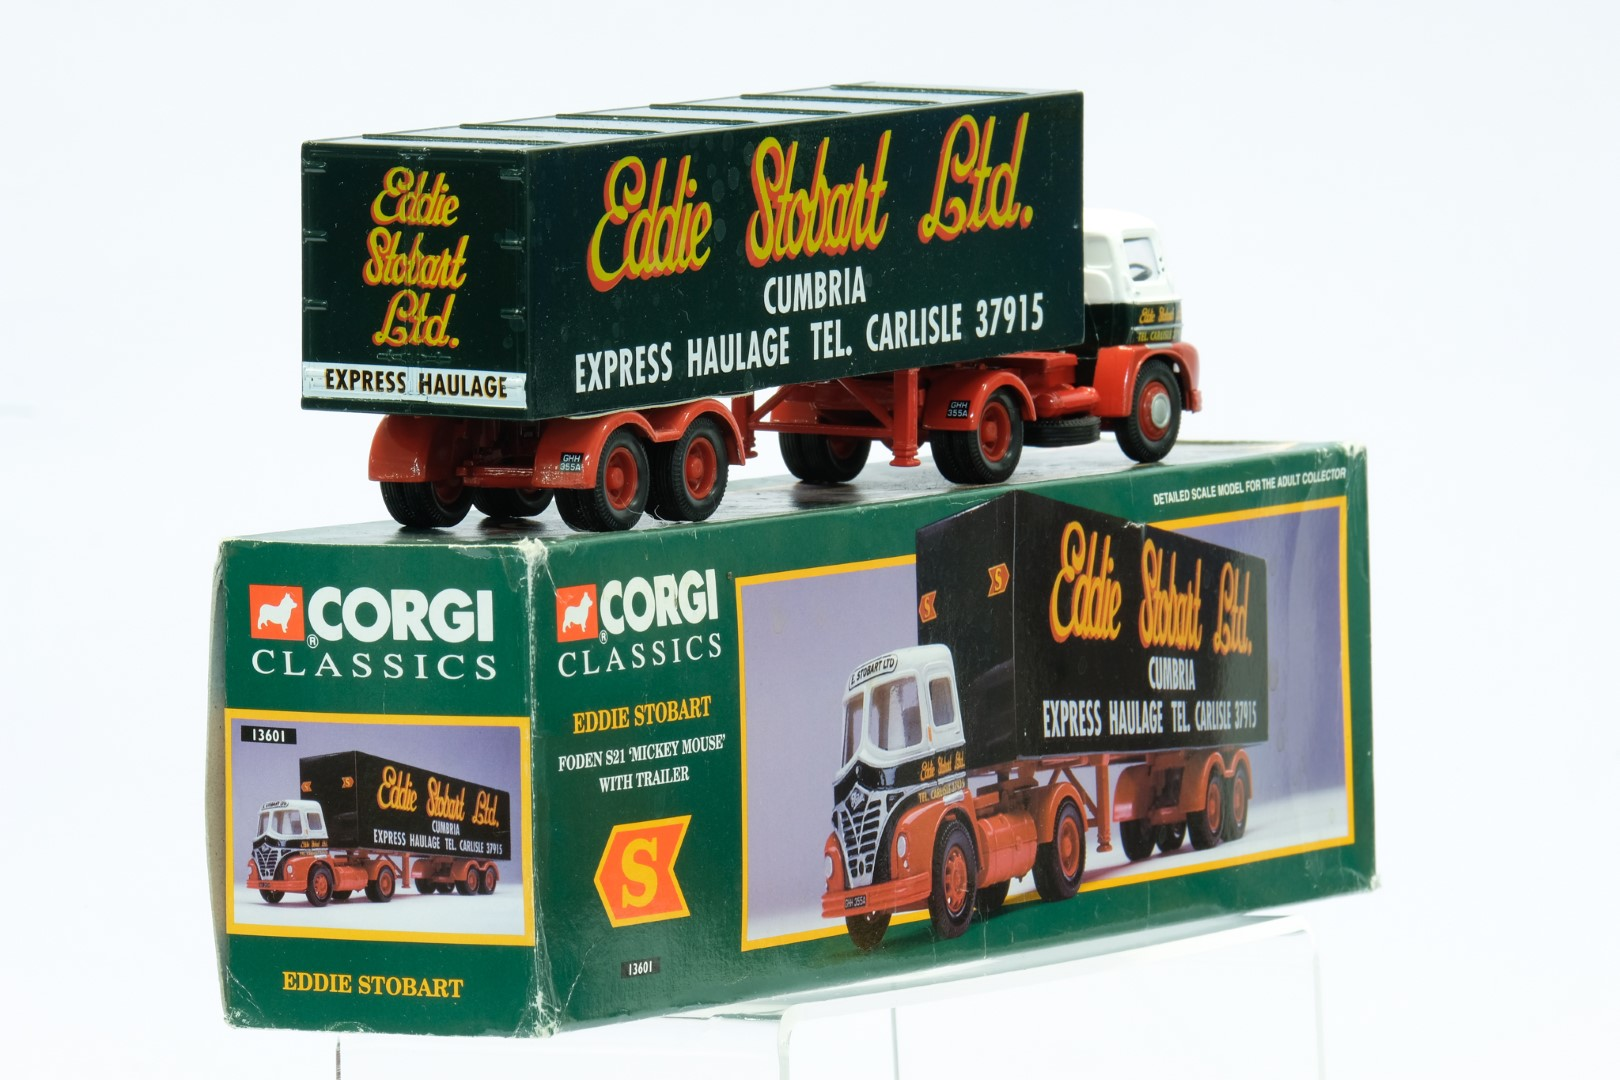 Corgi Foden S21 'Mickey Mouse' With Trailer - Eddie Stobart - Image 3 of 3